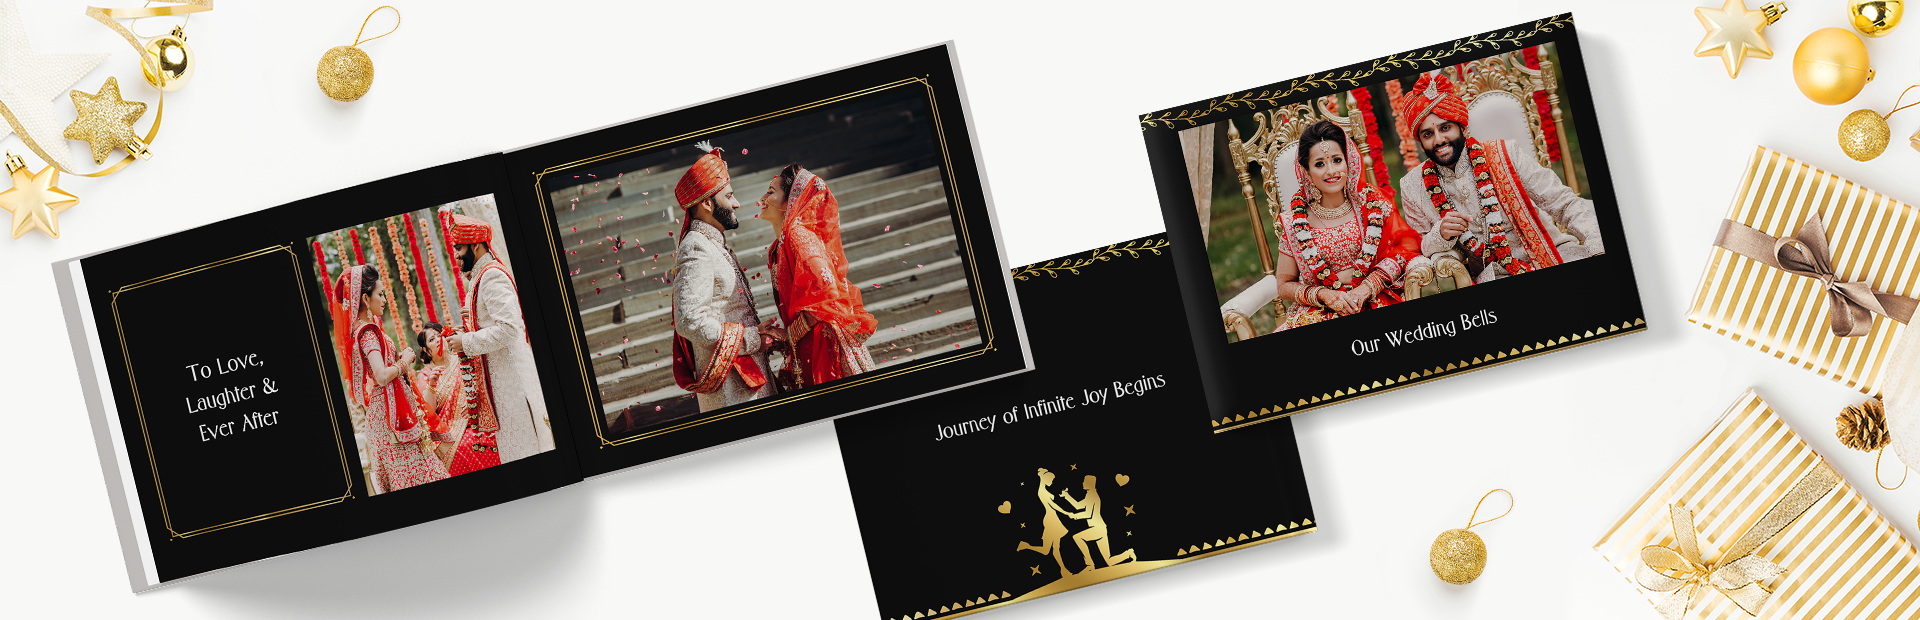 Gilded Wedding Photo Books Online